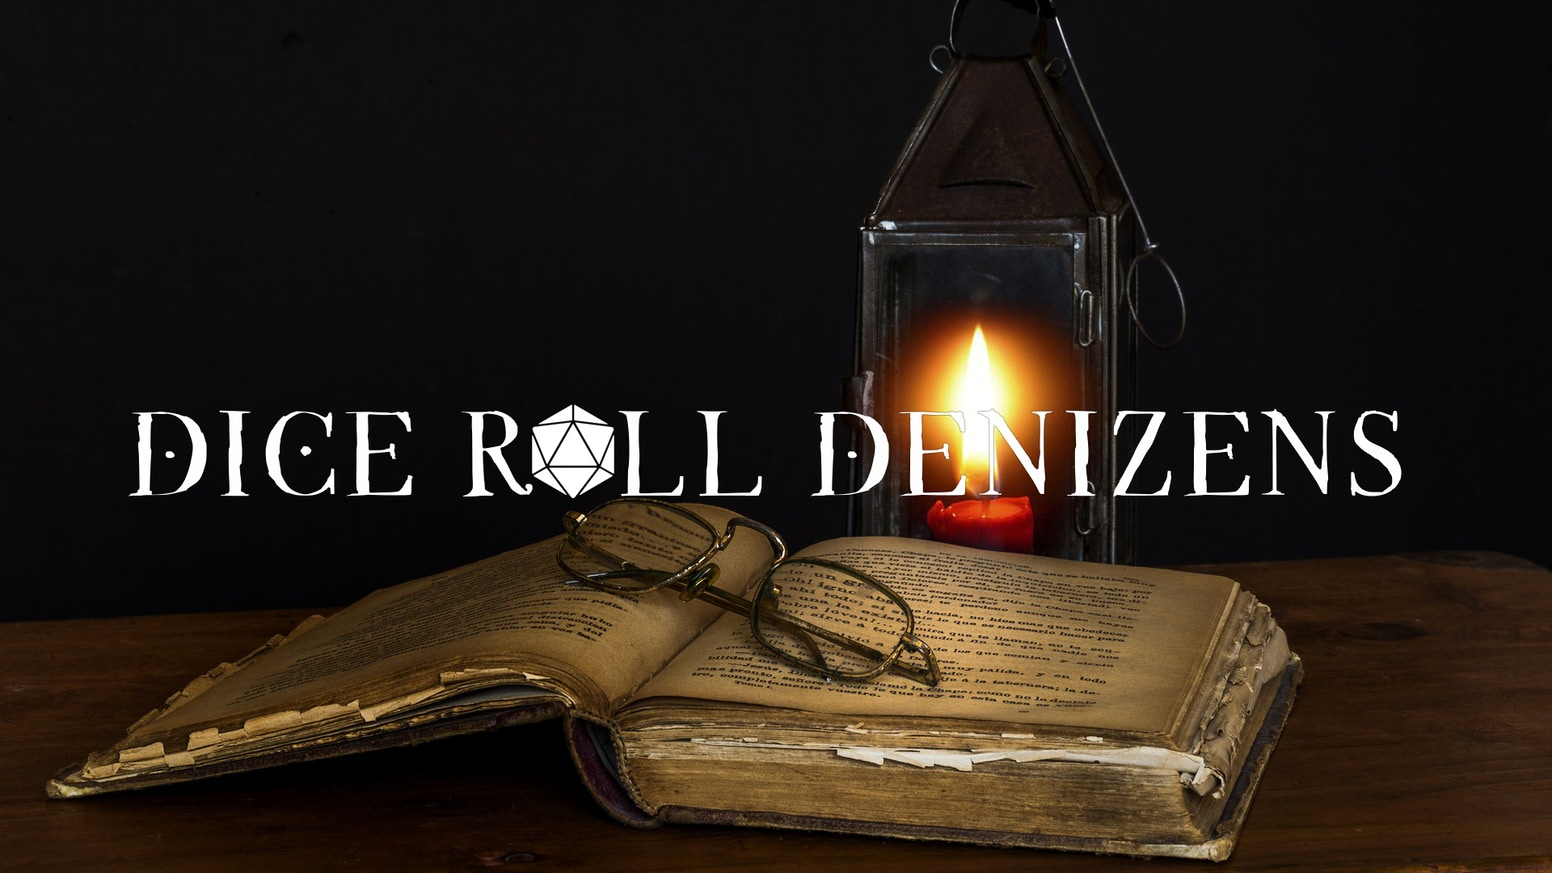 Dice Roll Denizens is a collection of prompts that let you create over 100 detailed fantasy NPCs in minutes - all by rolling the dice!